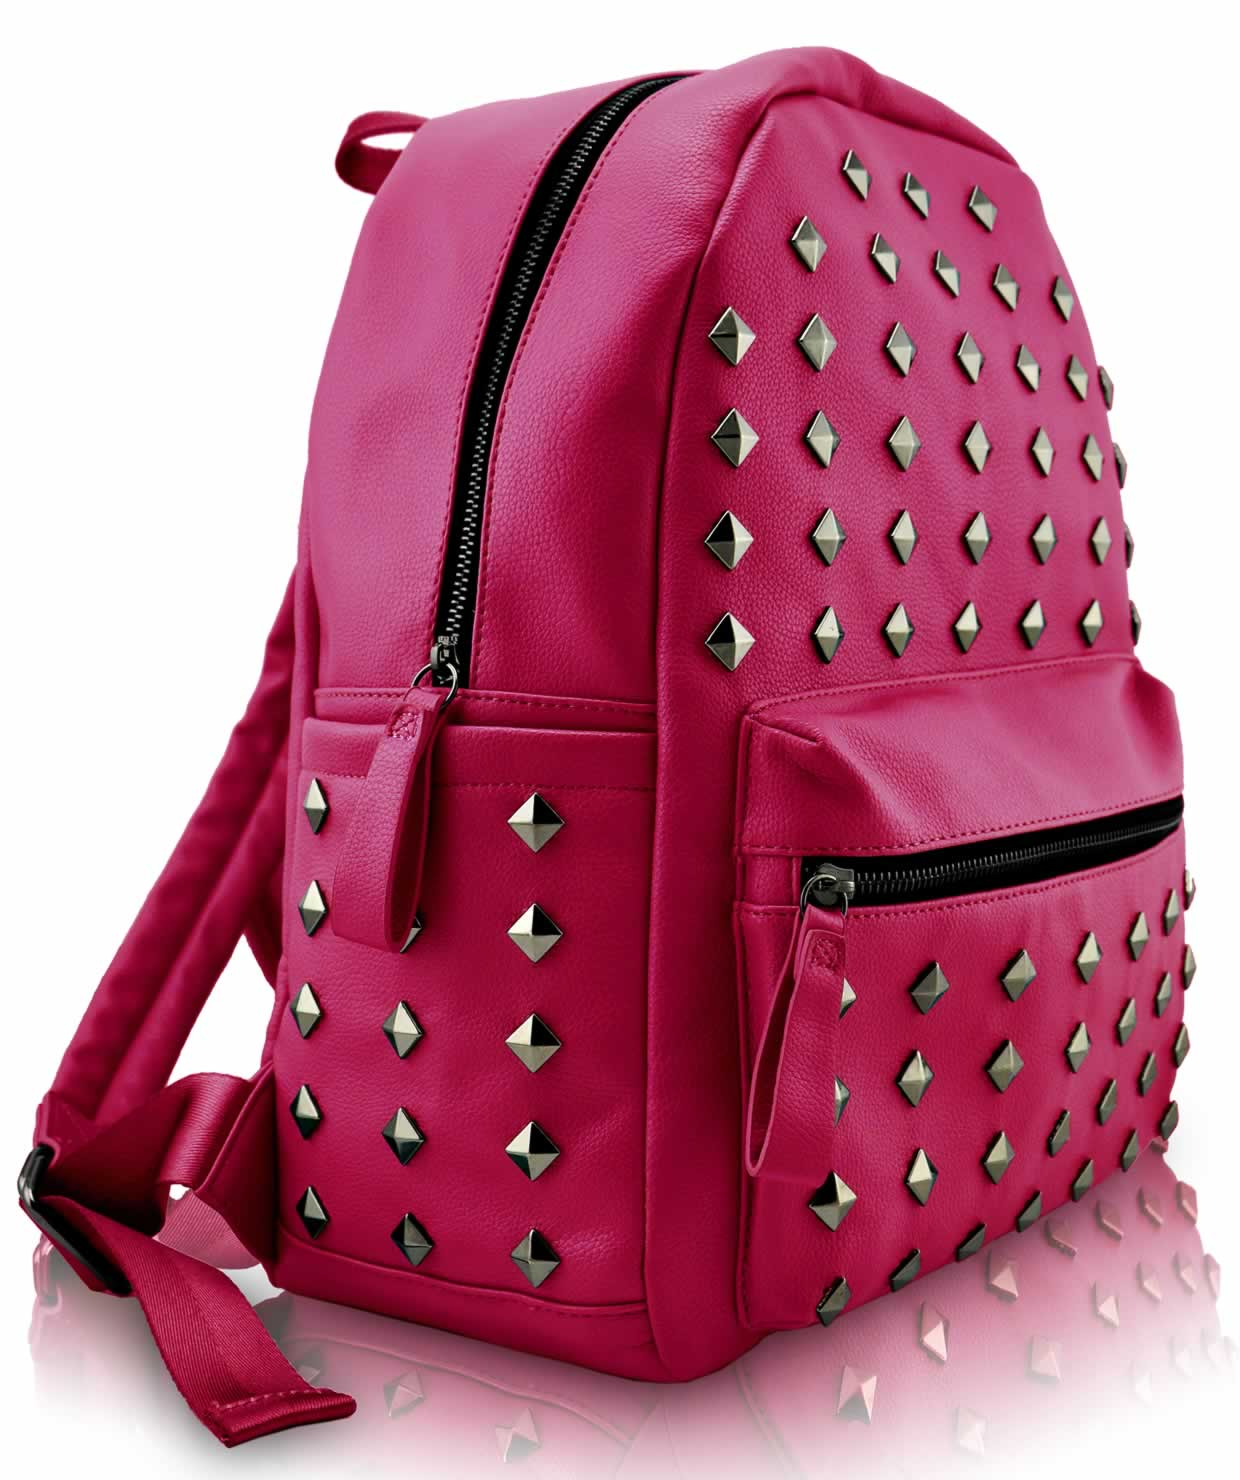 Designer Backpacks For Girls j6urrfF0